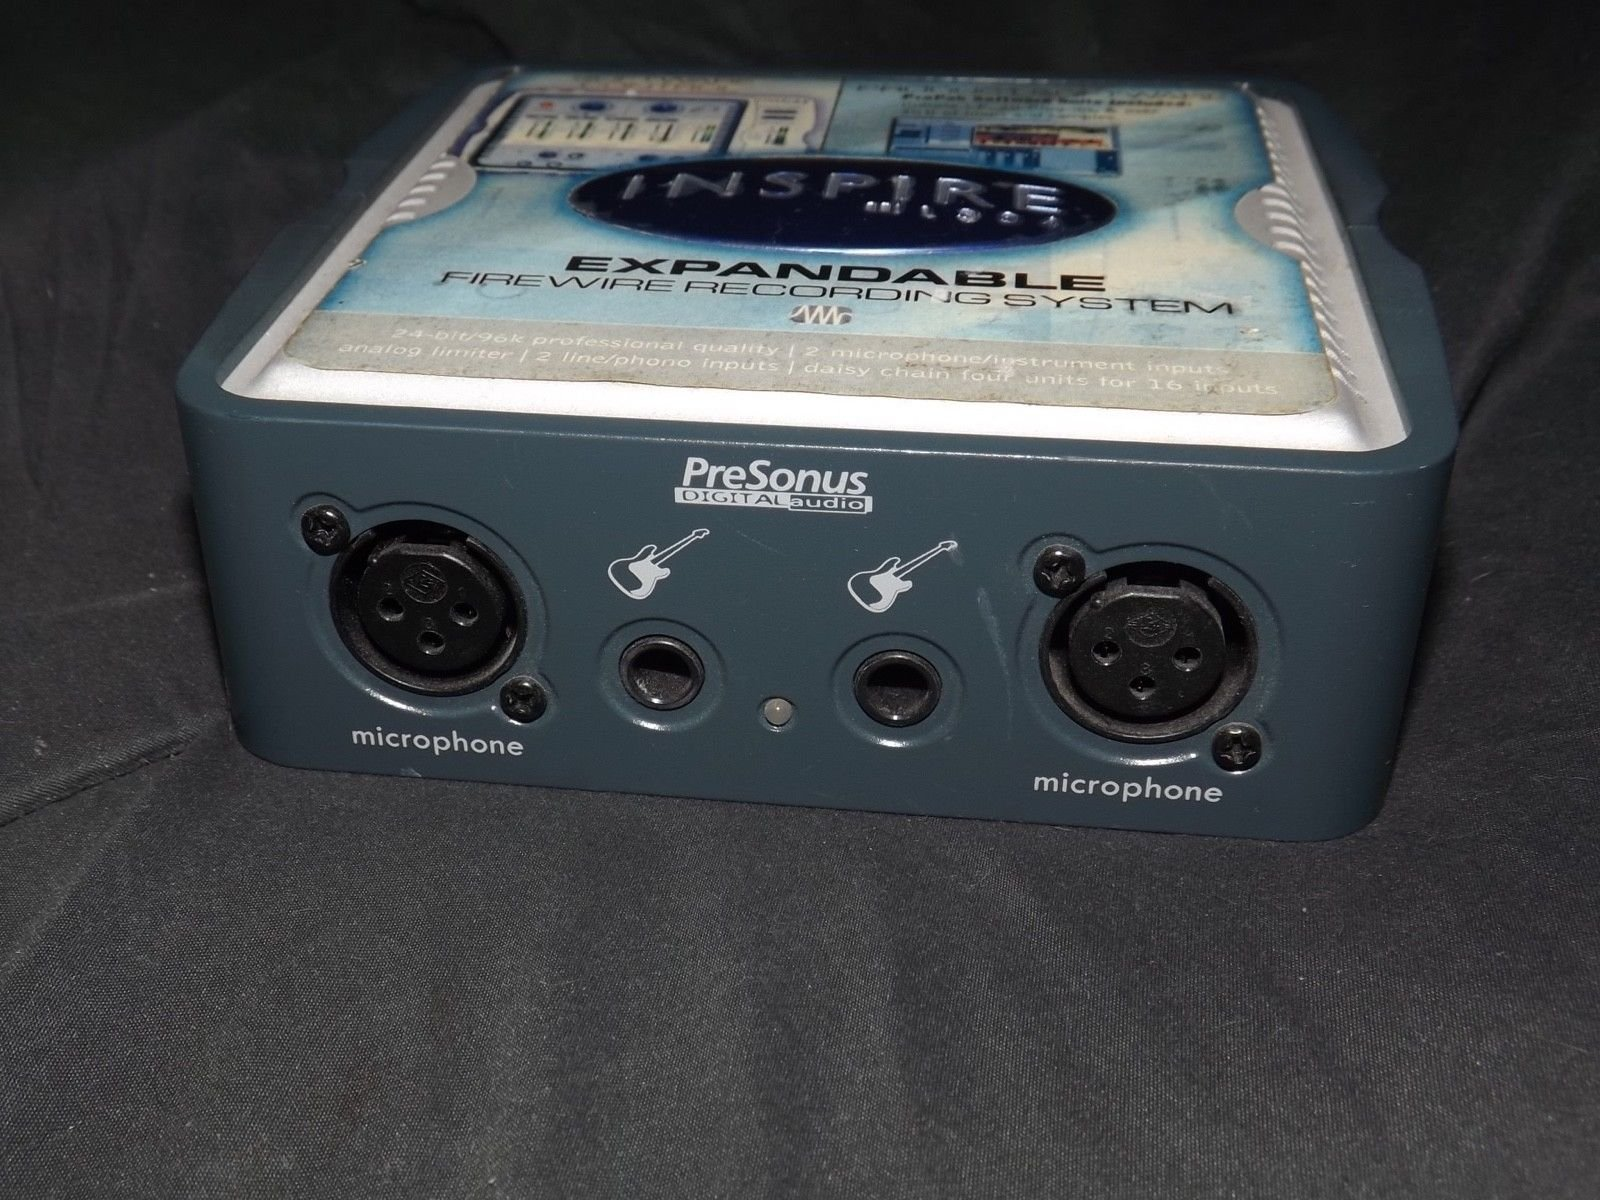 Preowned Inspire 1394 Expandable Firewire Recording System with Power Supply